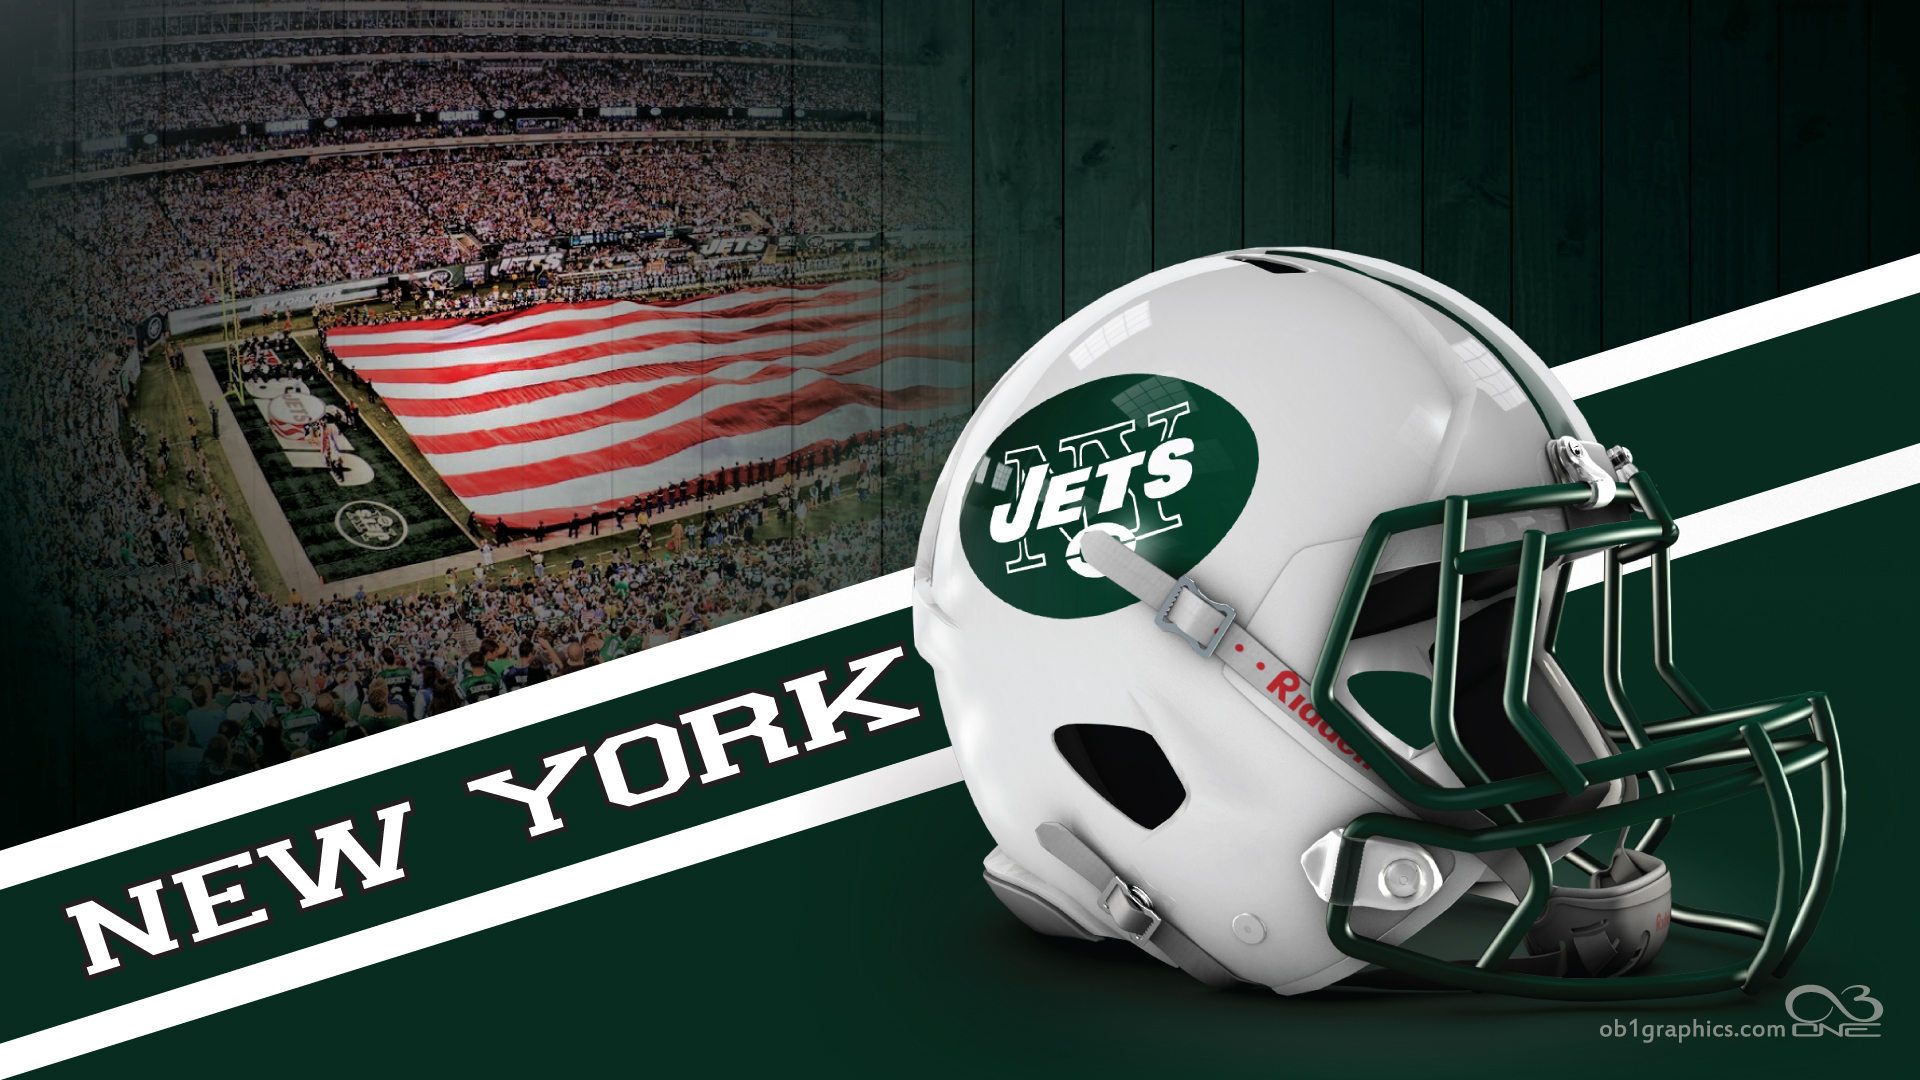 New York Jets Wallpaper Pics 001   HDWallpaperSetsCom 1920x1080